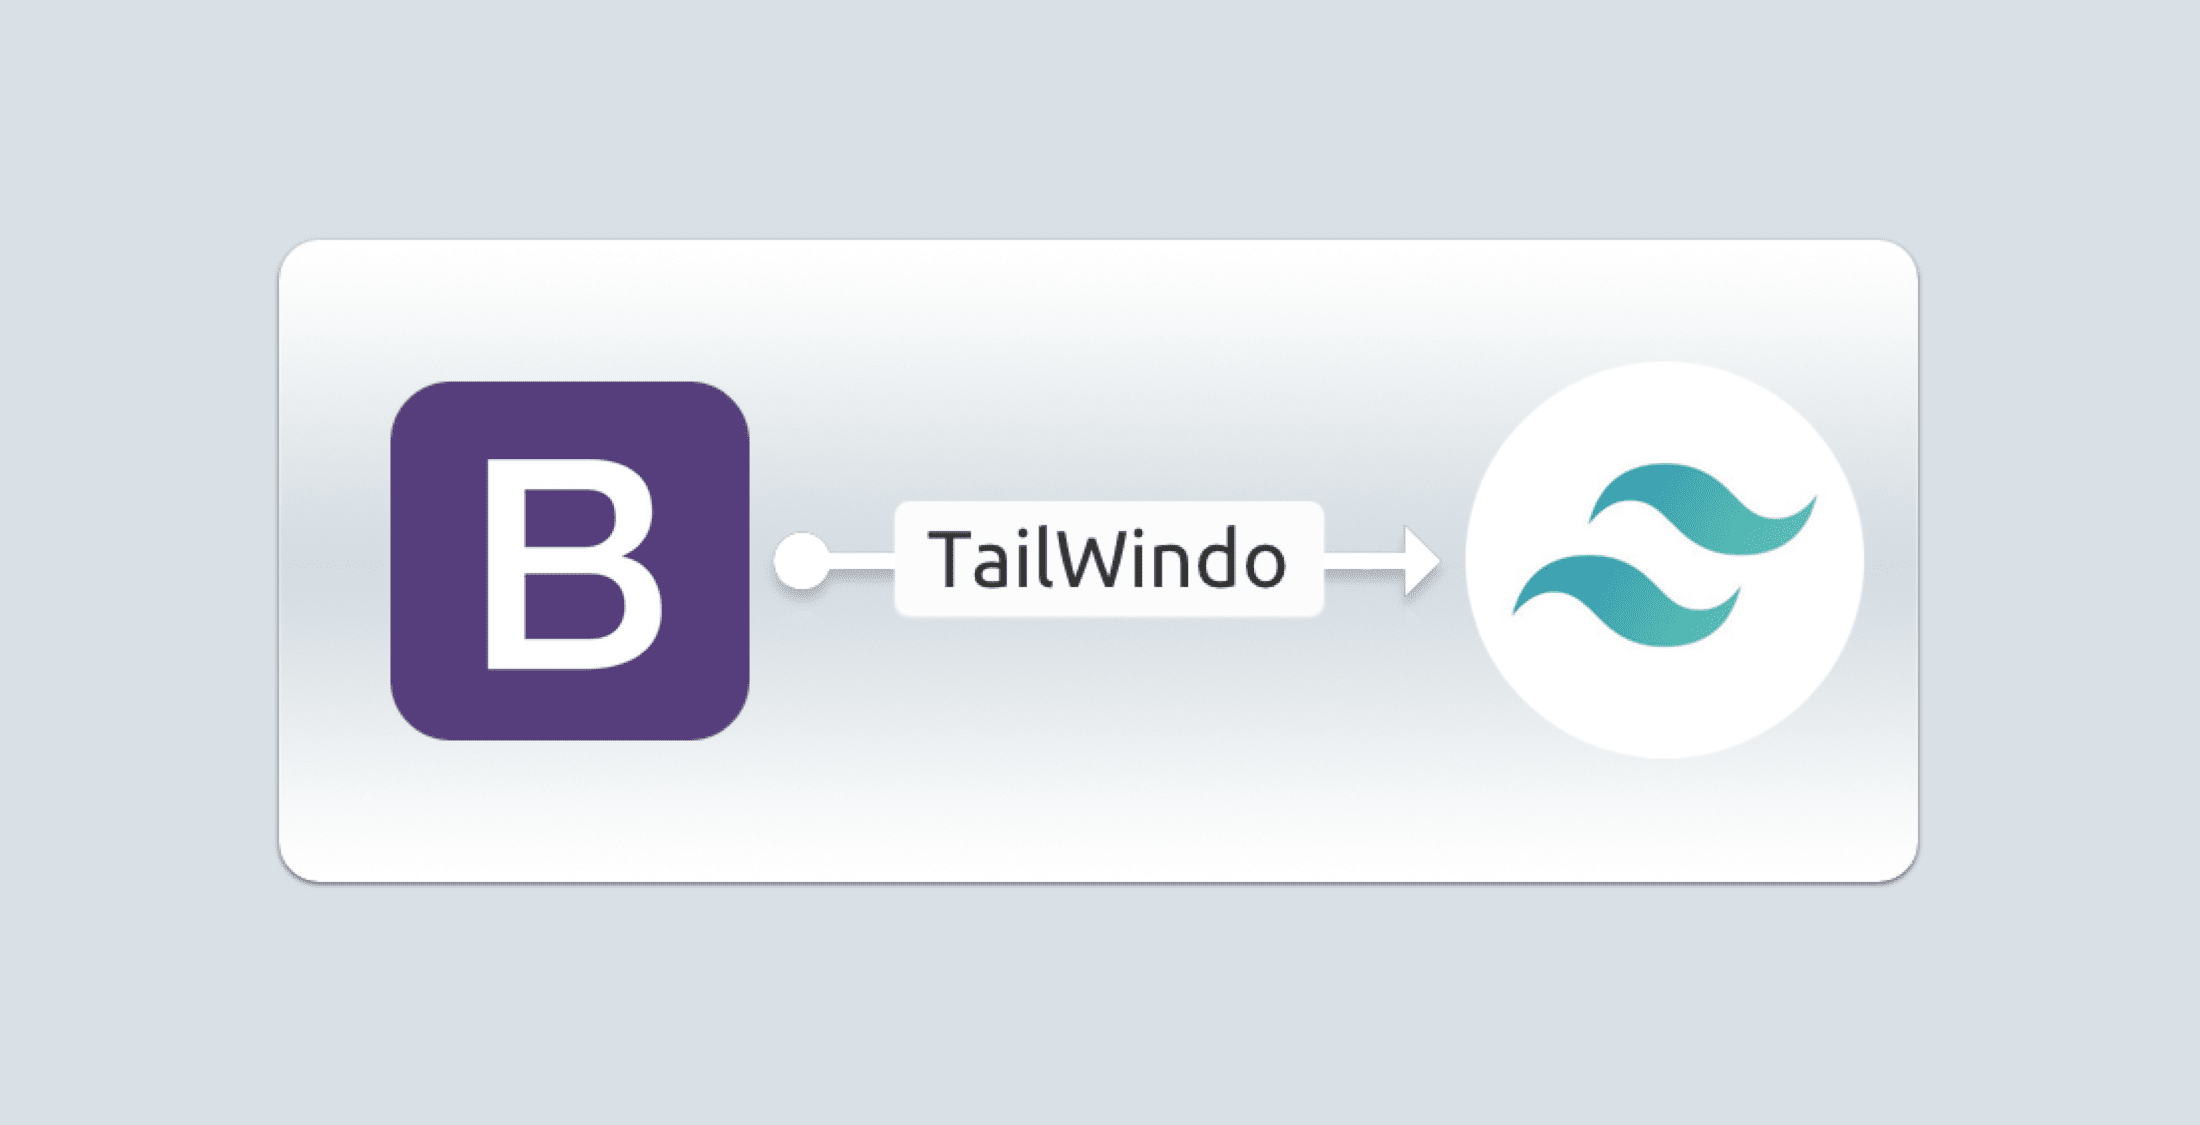 tailwindo.png